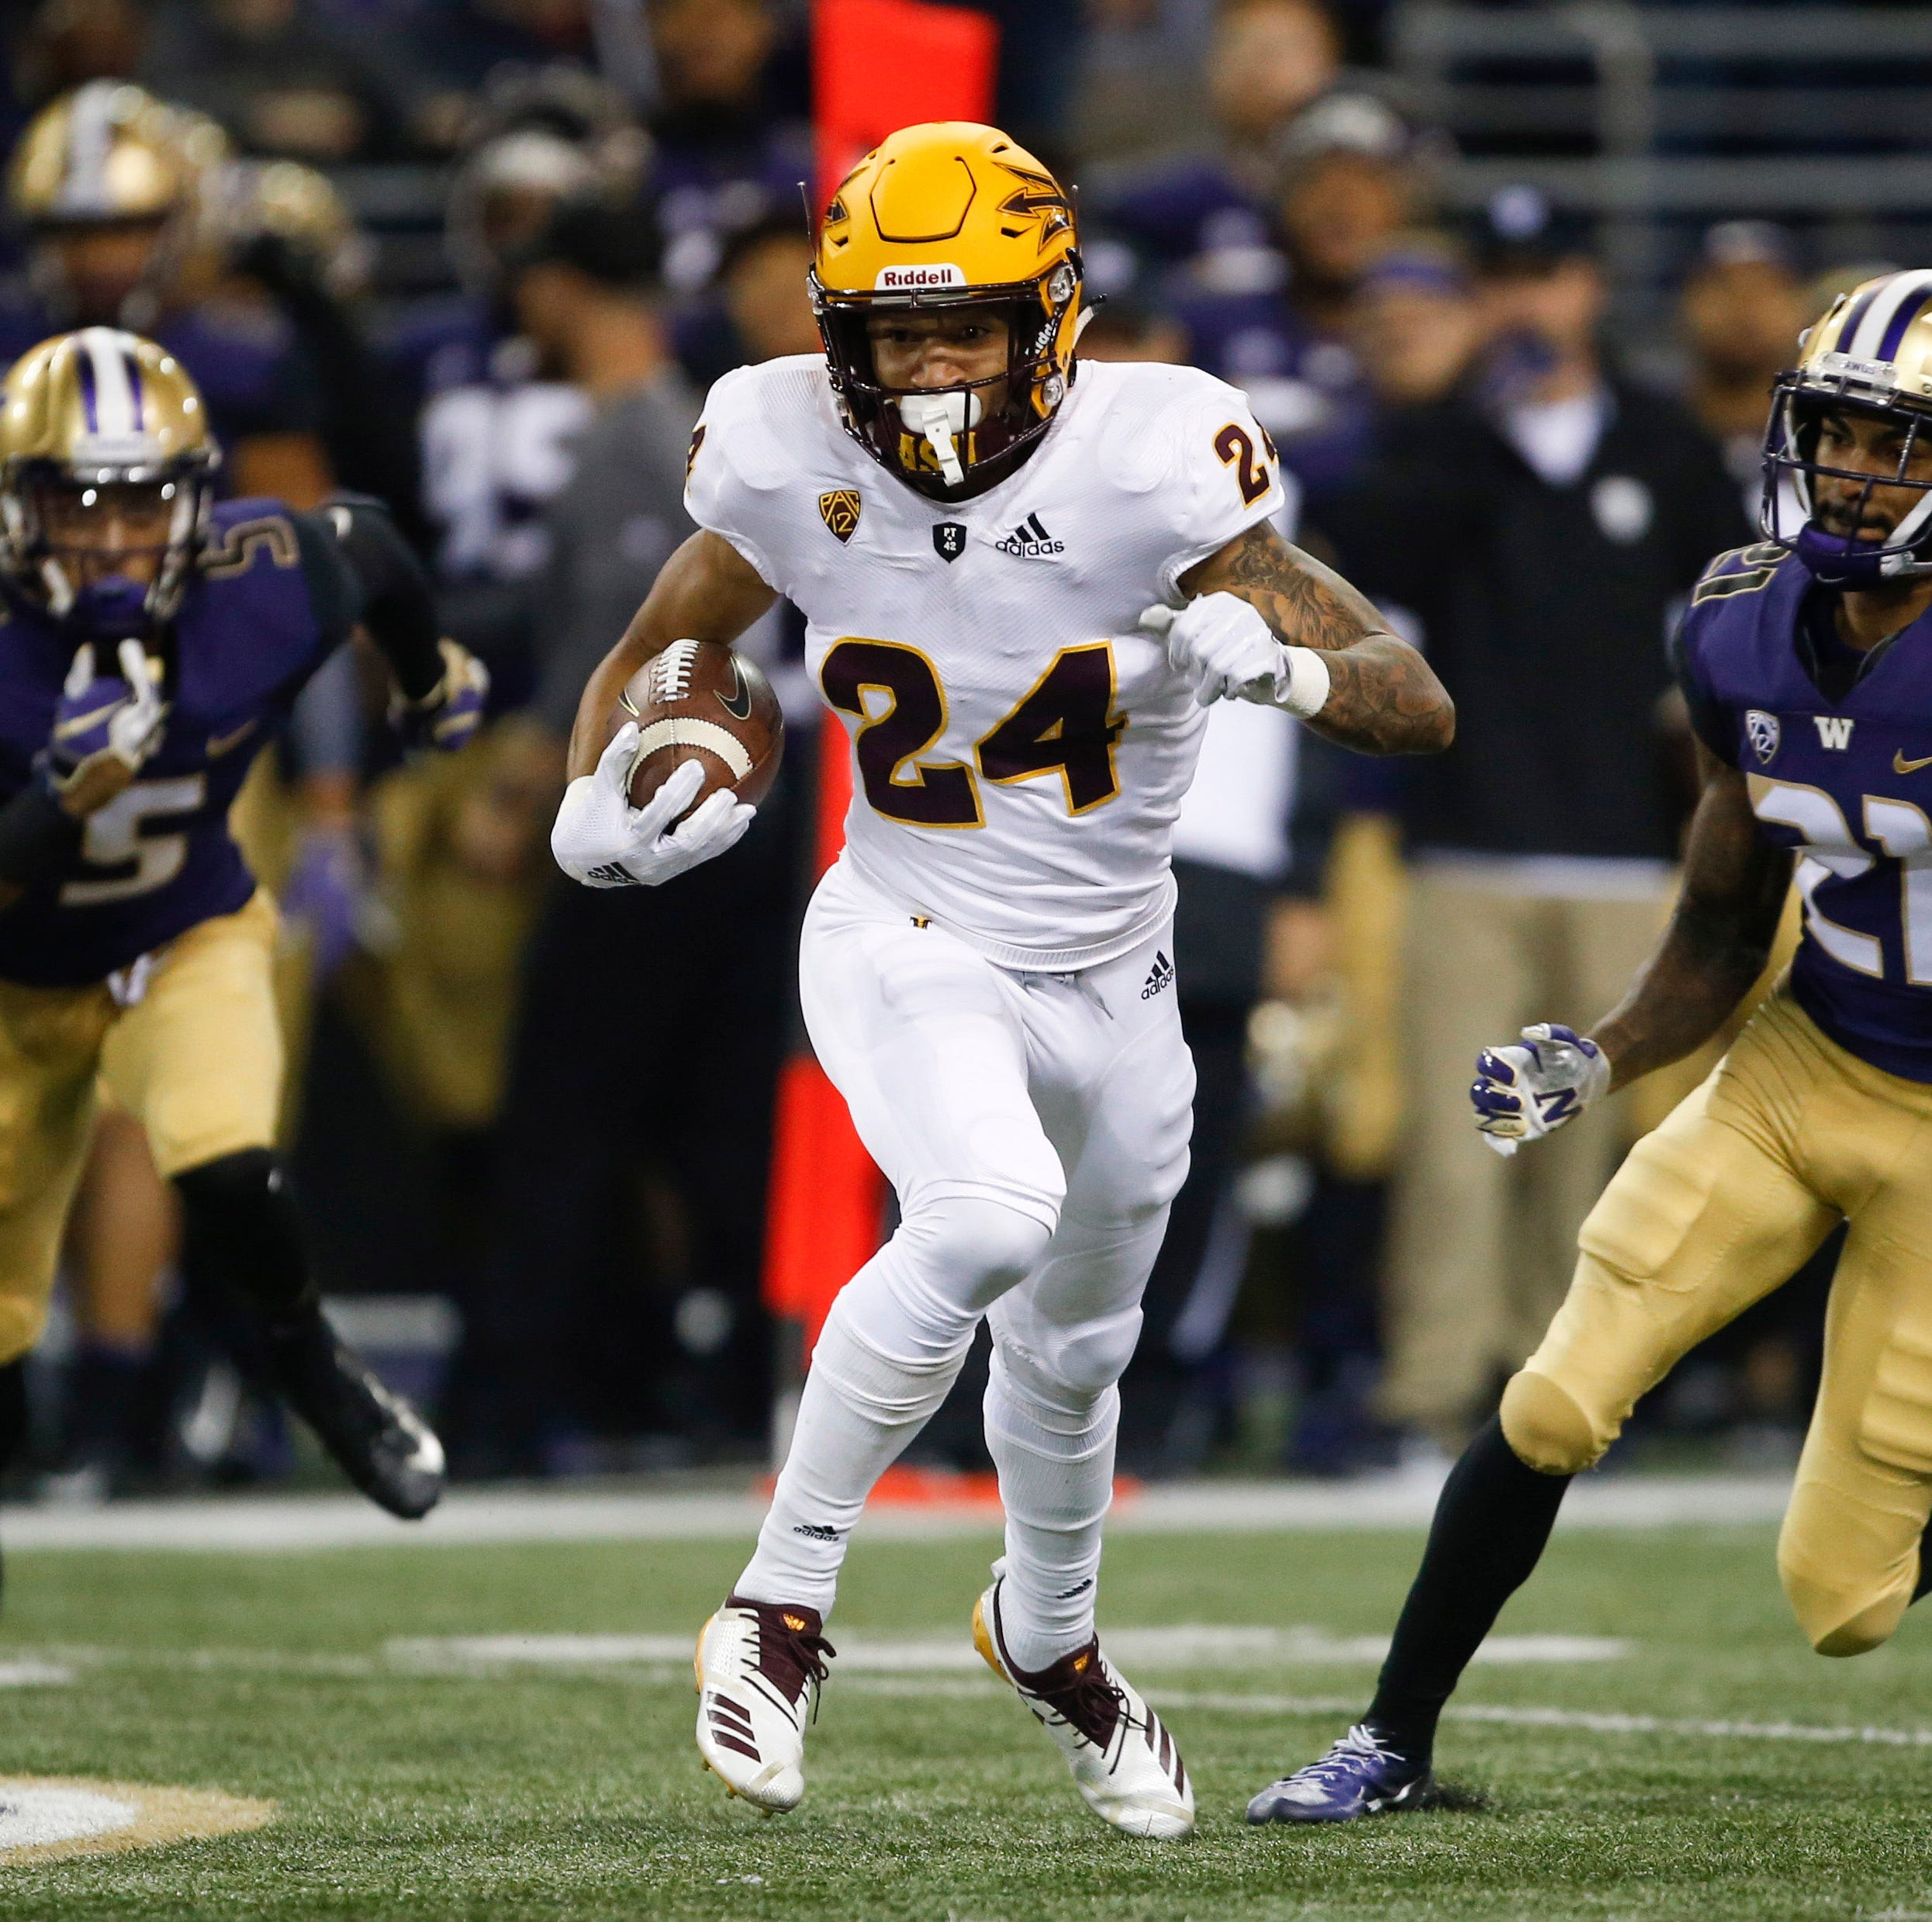 Arizona State football shows off 'turnover curls' against Washington